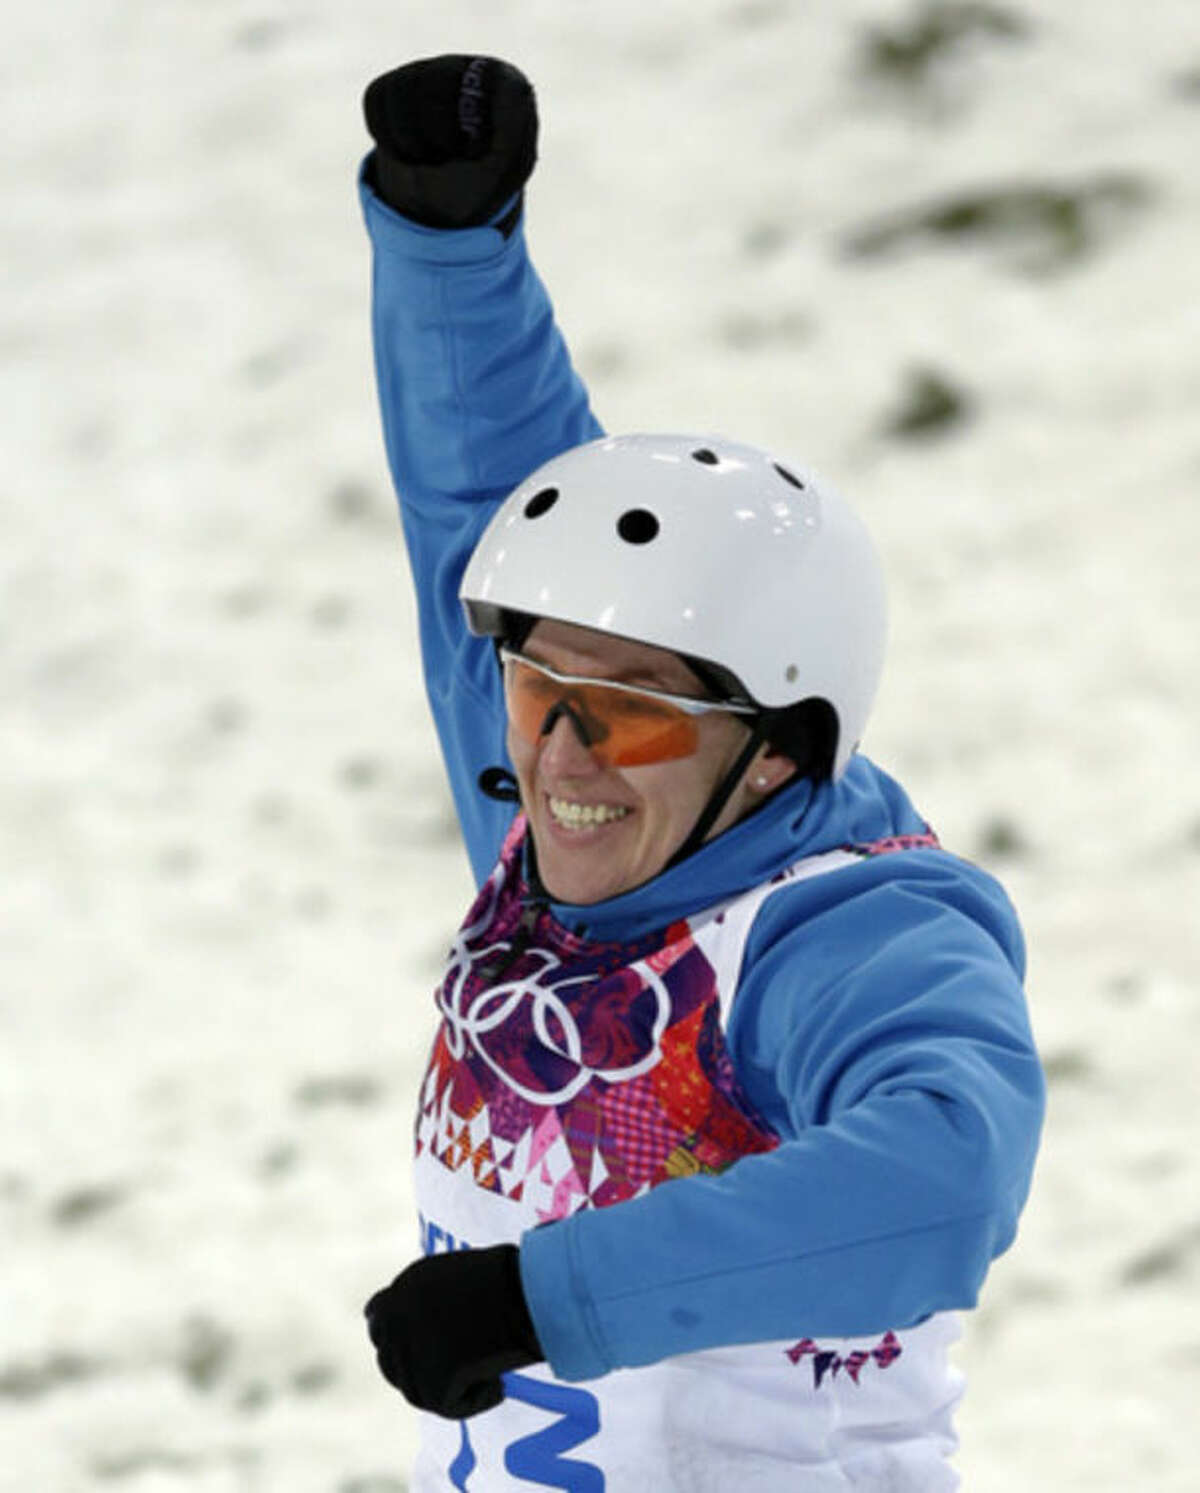 Alla Tsuper of Belarus celebrates after landing her final jump in the women's freestyle skiing aerials final at the Rosa Khutor Extreme Park, at the 2014 Winter Olympics, Friday, Feb. 14, 2014, in Krasnaya Polyana, Russia. Tsuper won the gold medal. (AP Photo/Andy Wong)